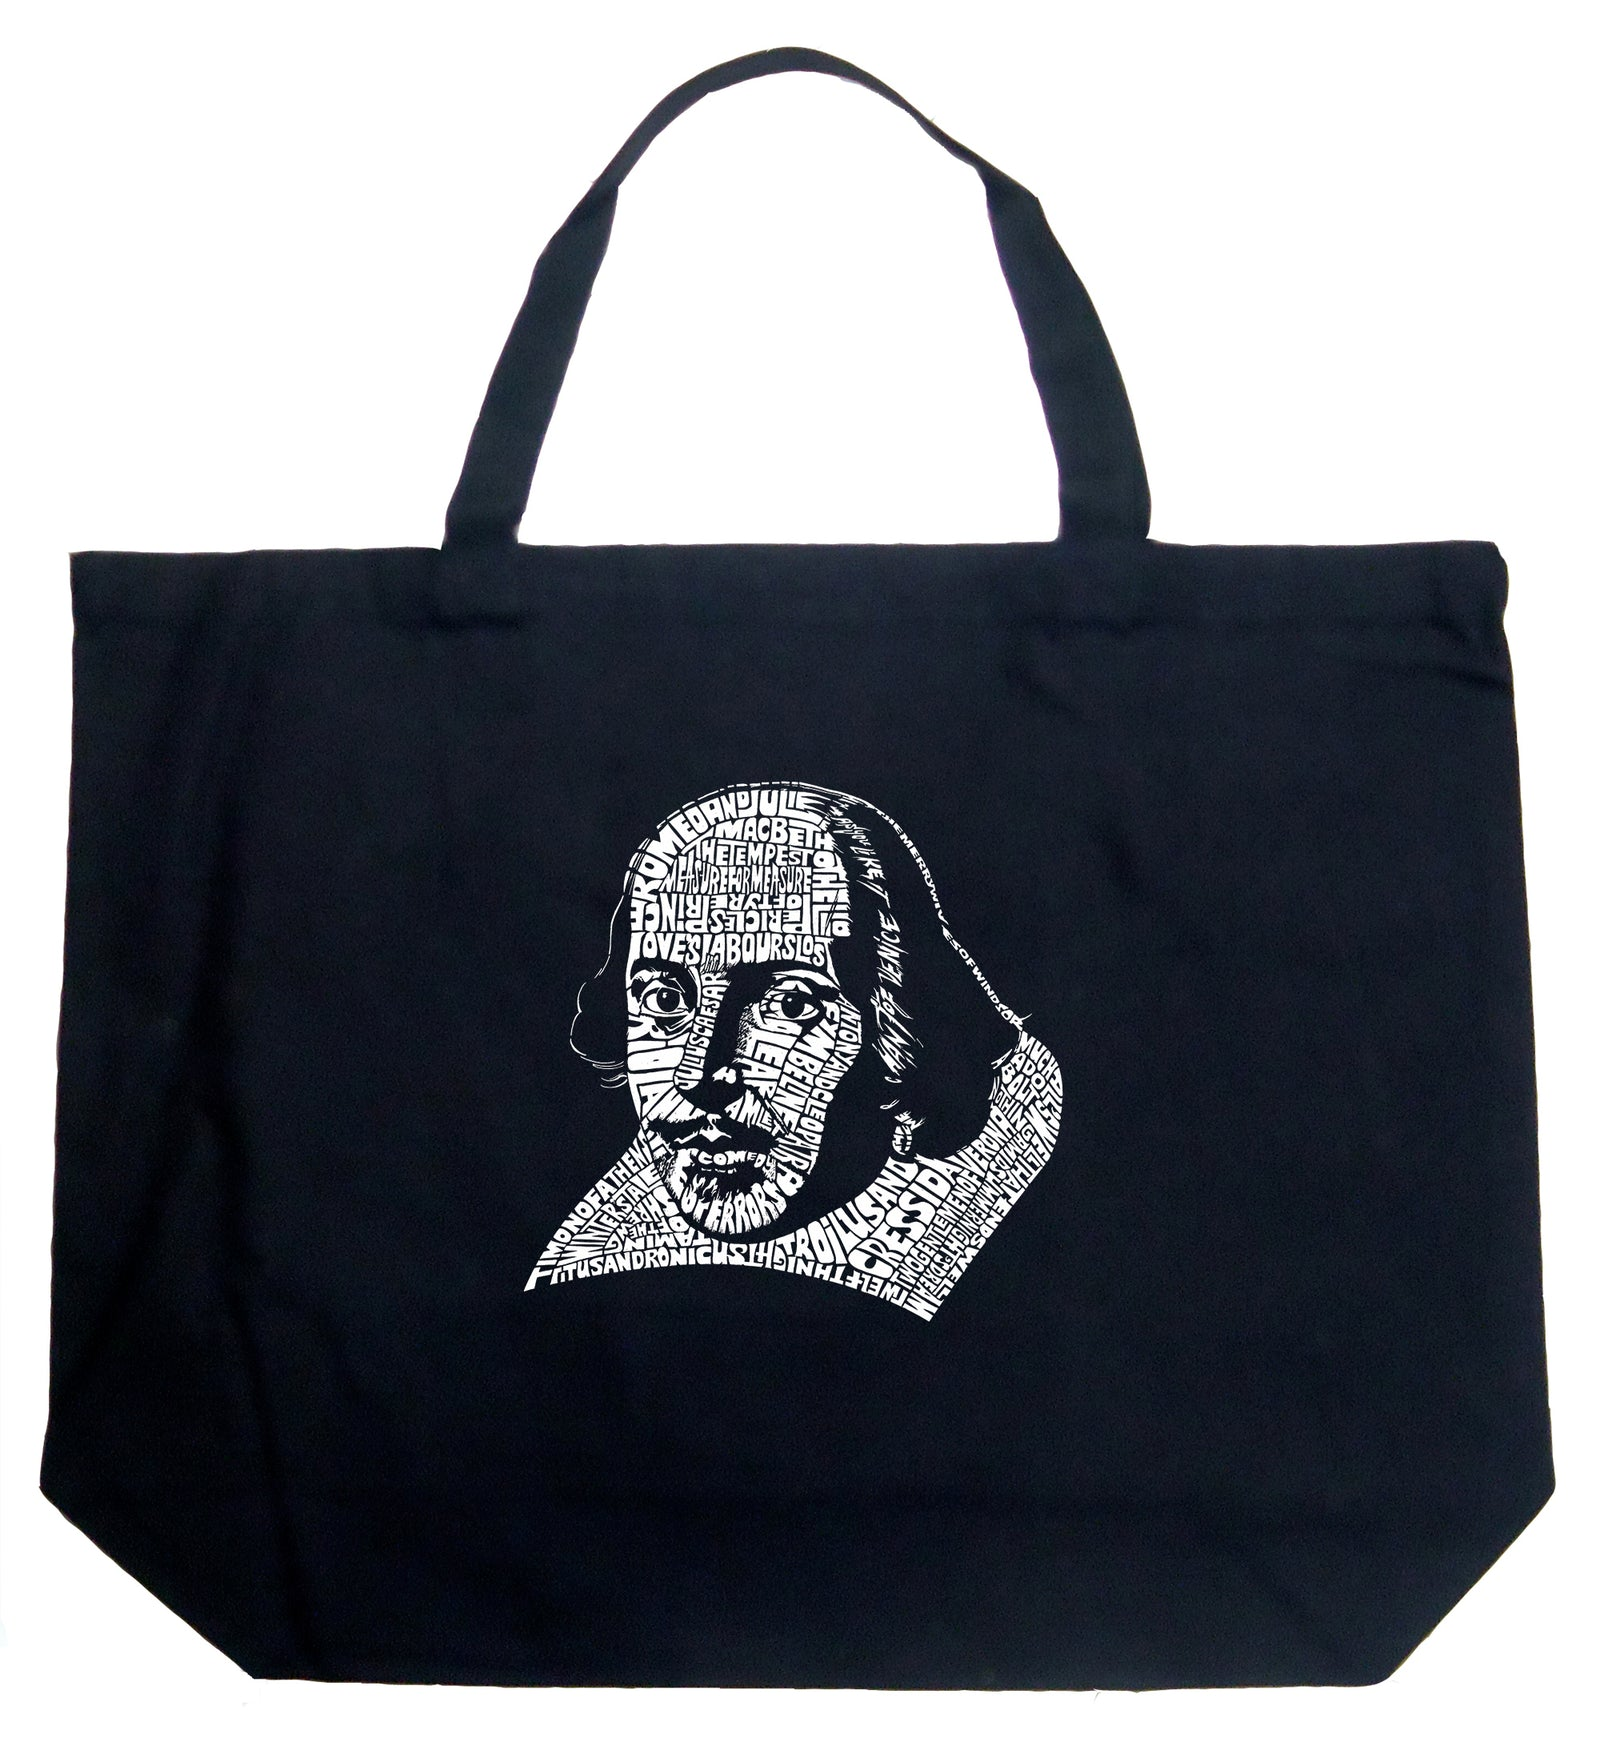 Large Tote Bag - THE TITLES OF ALL OF WILLIAM SHAKESPEARE'S COMEDIES & TRAGEDIES